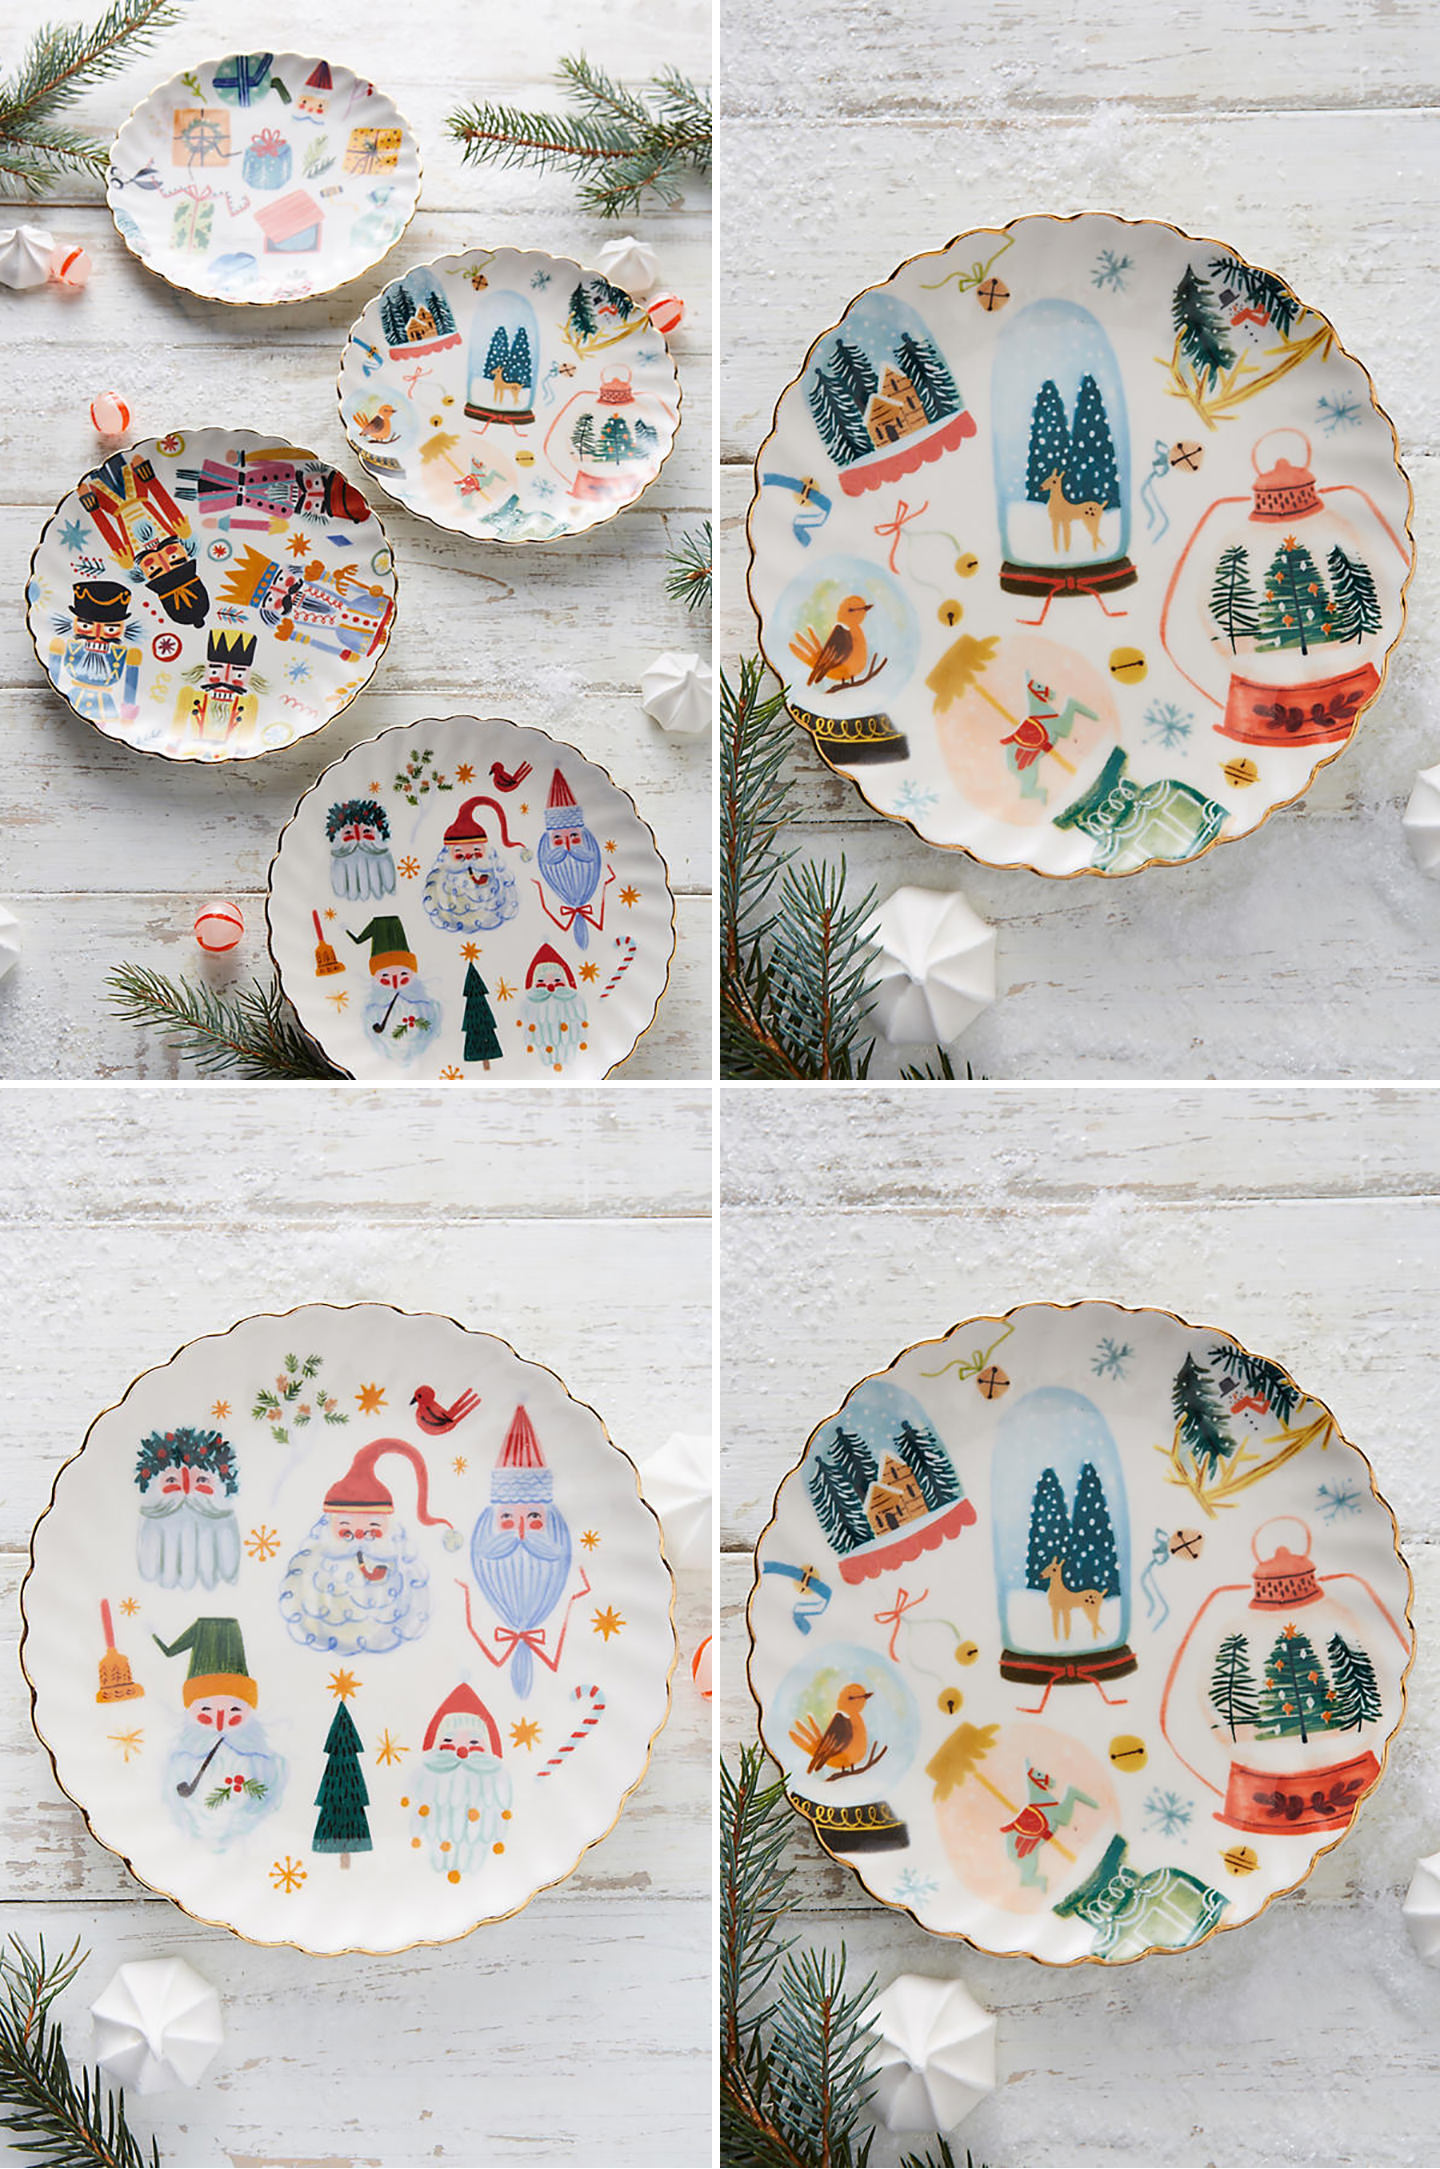 Blog-Mode-And-The-City-Lifestyle-Cinq-Peties-Choses-198-Anthropologie-assiettes-Noel